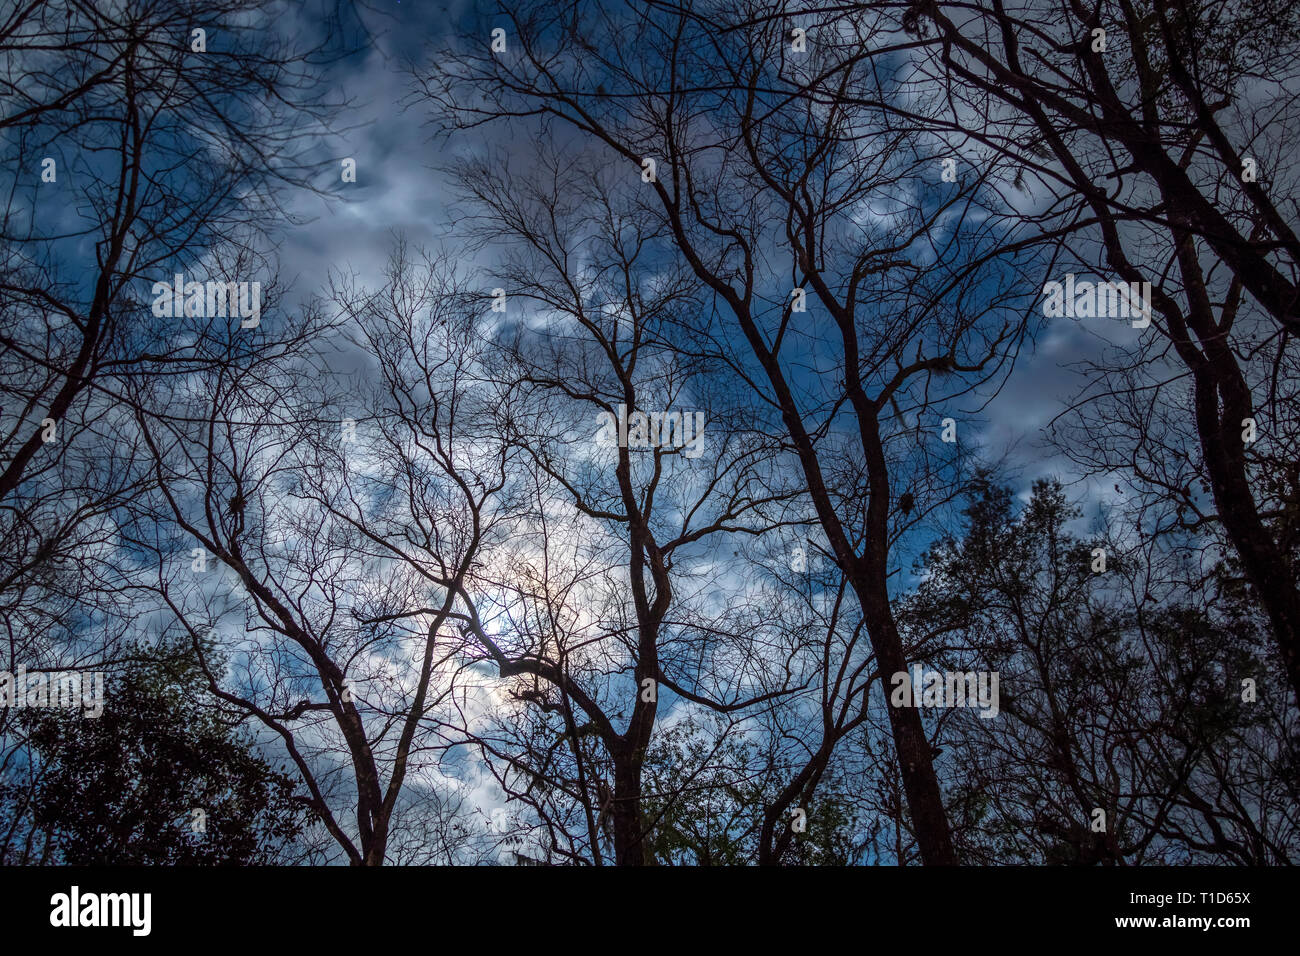 Cloudy moonlit night sky silhouettes bare Hickory tree skeletons - Stock Image